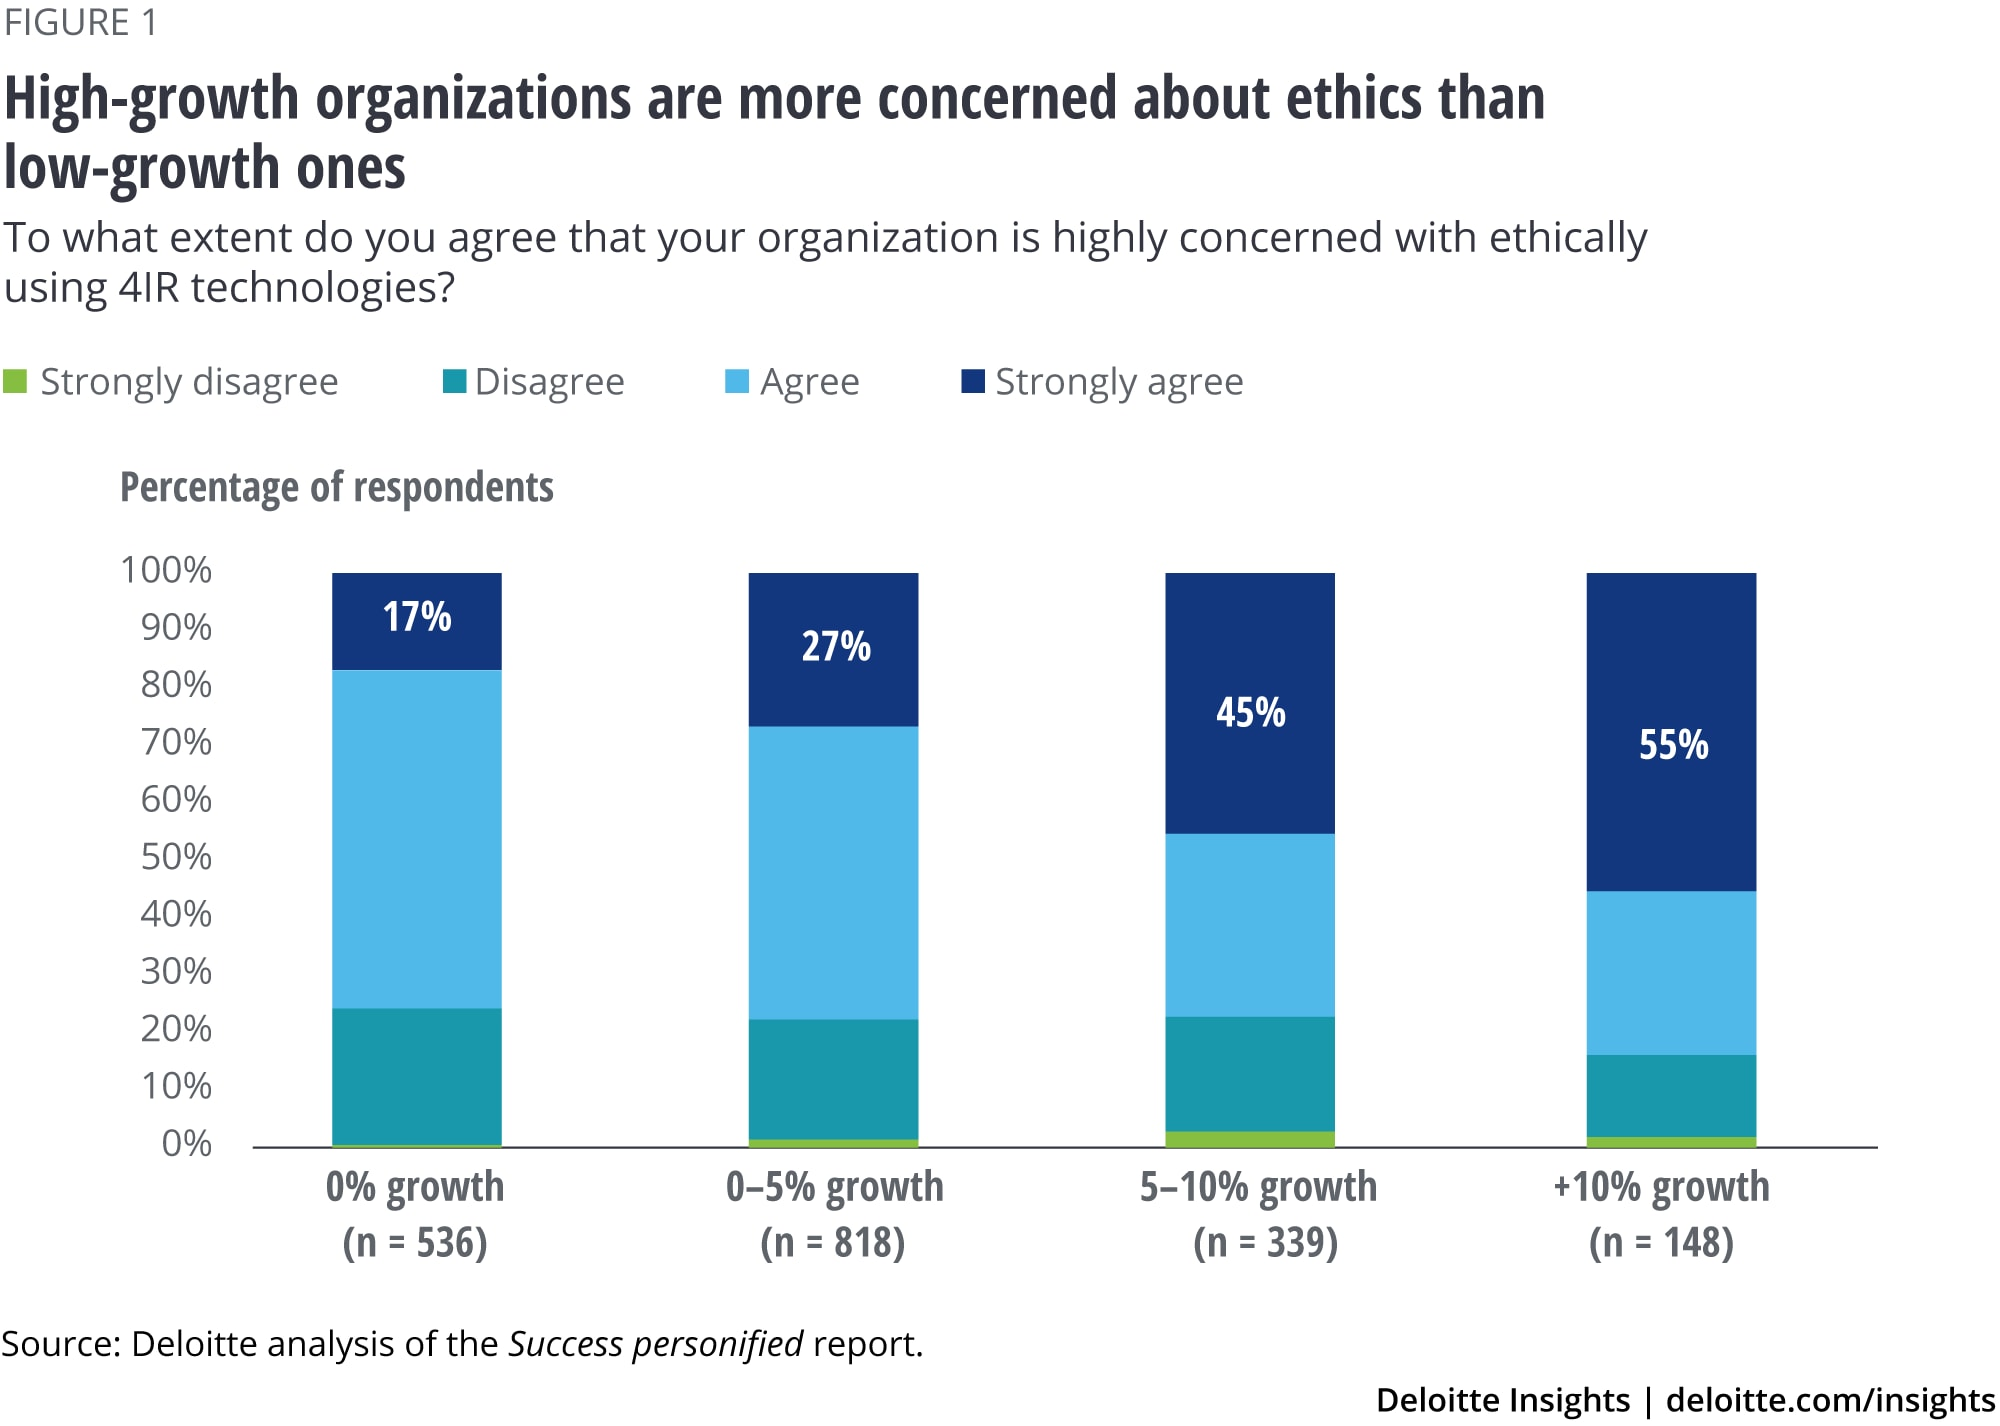 High-growth organizations are more concerned about ethics than low-growth ones